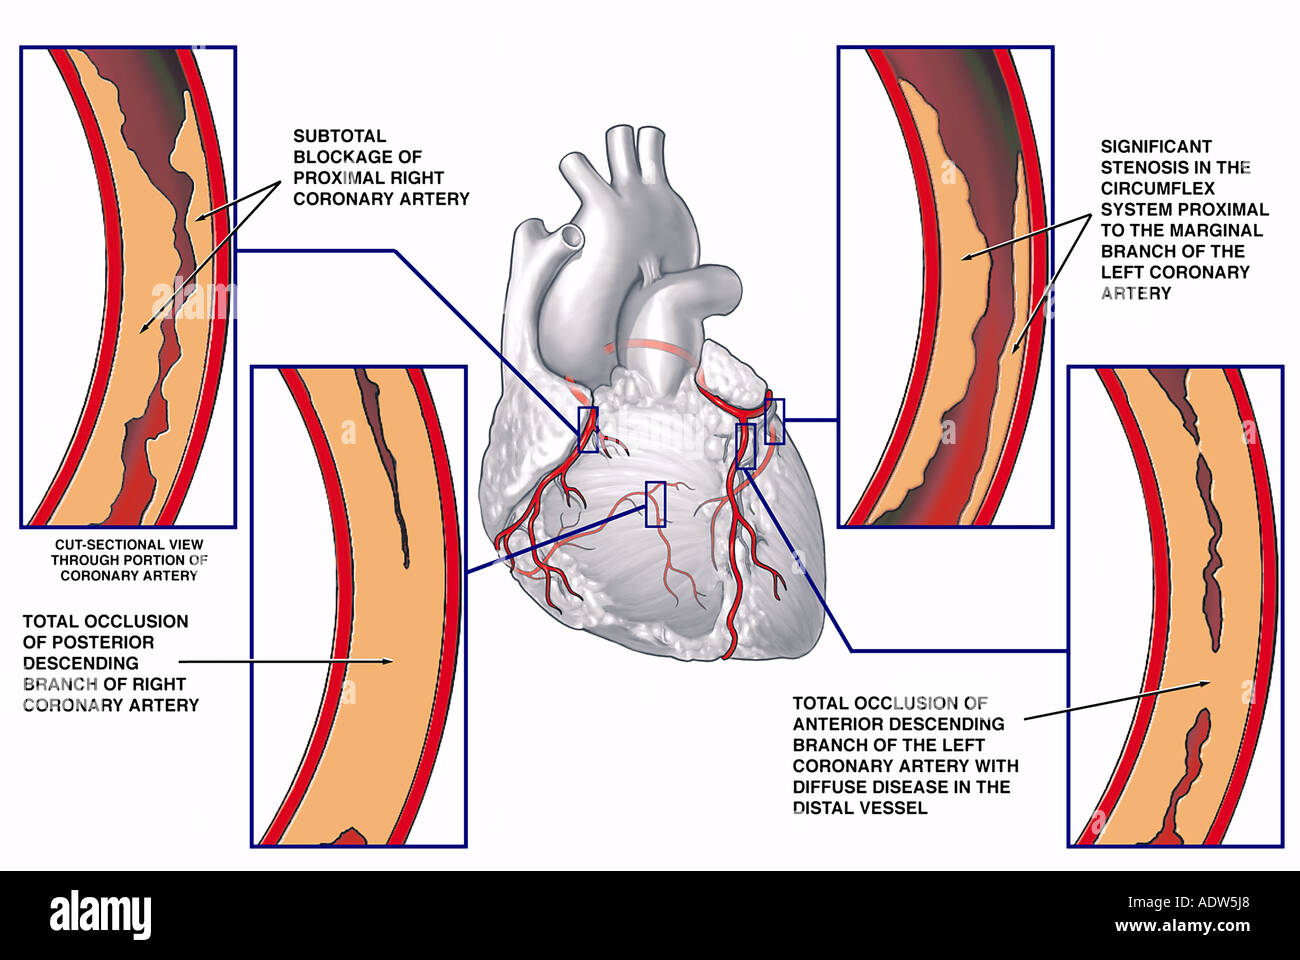 Coronary Artery Disease With Blockage Sites Stock Photo 7711975 Alamy